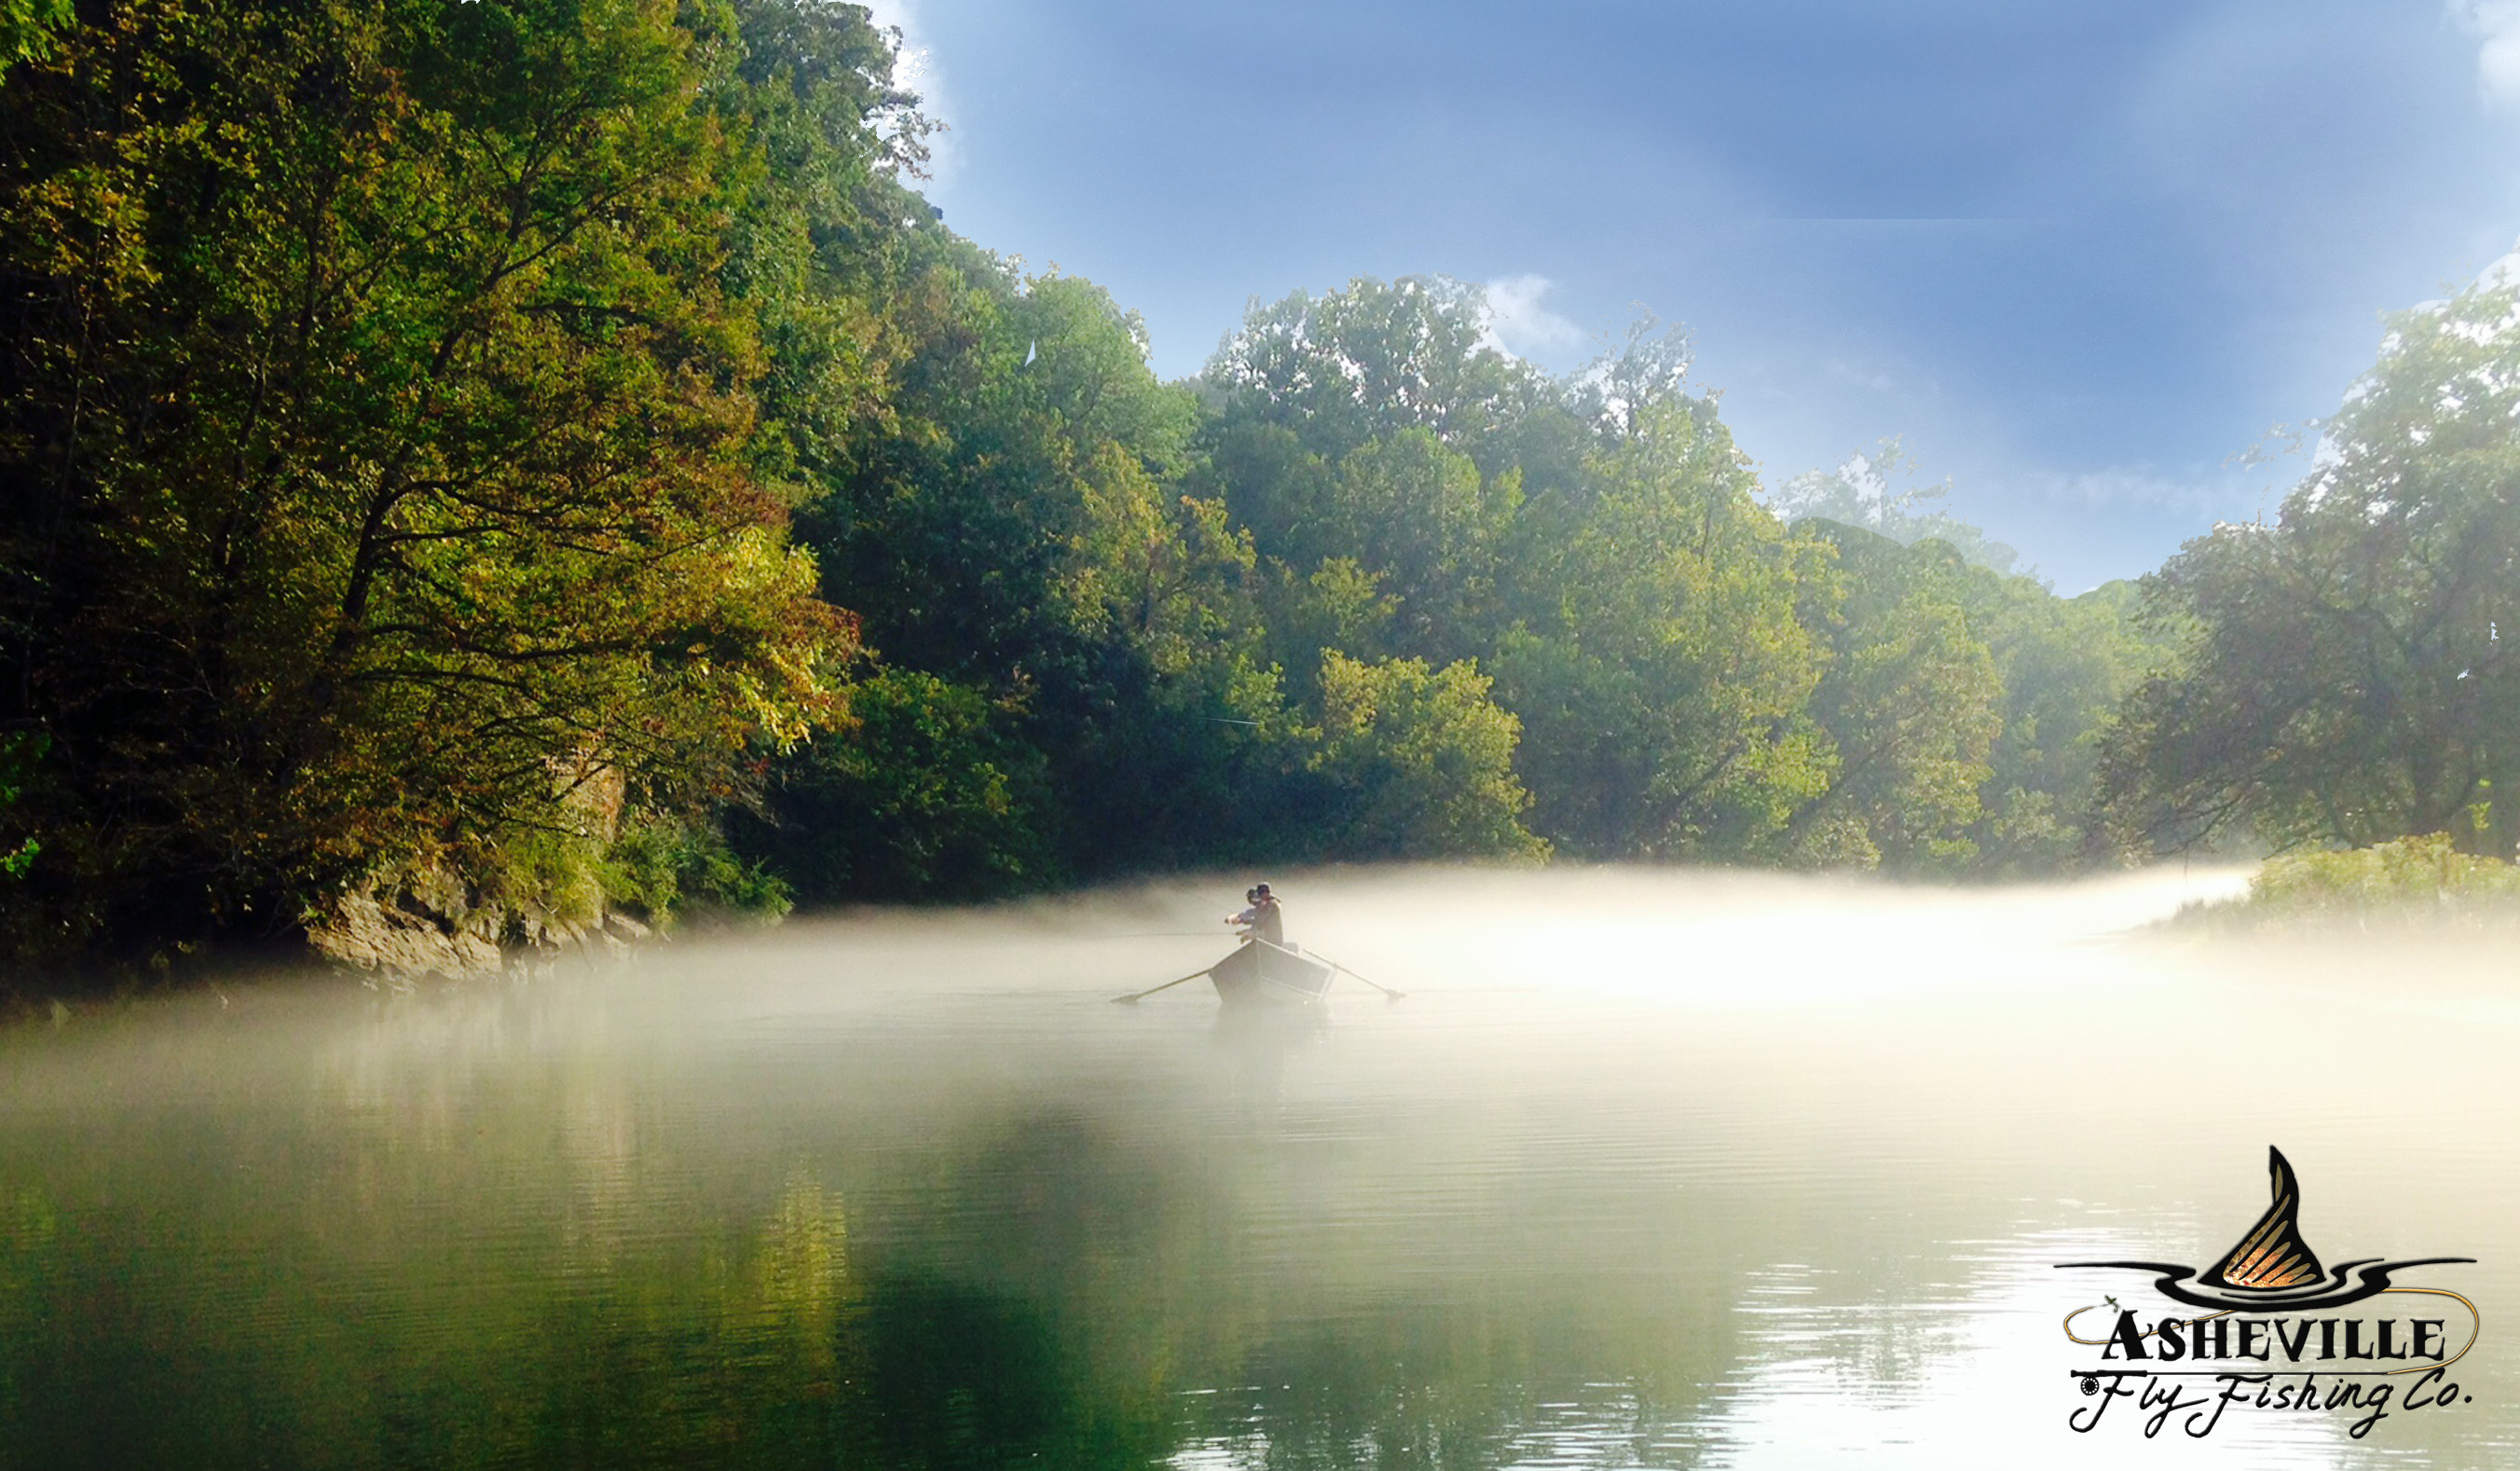 Asheville Fly Fishing Company: Overnight Trips